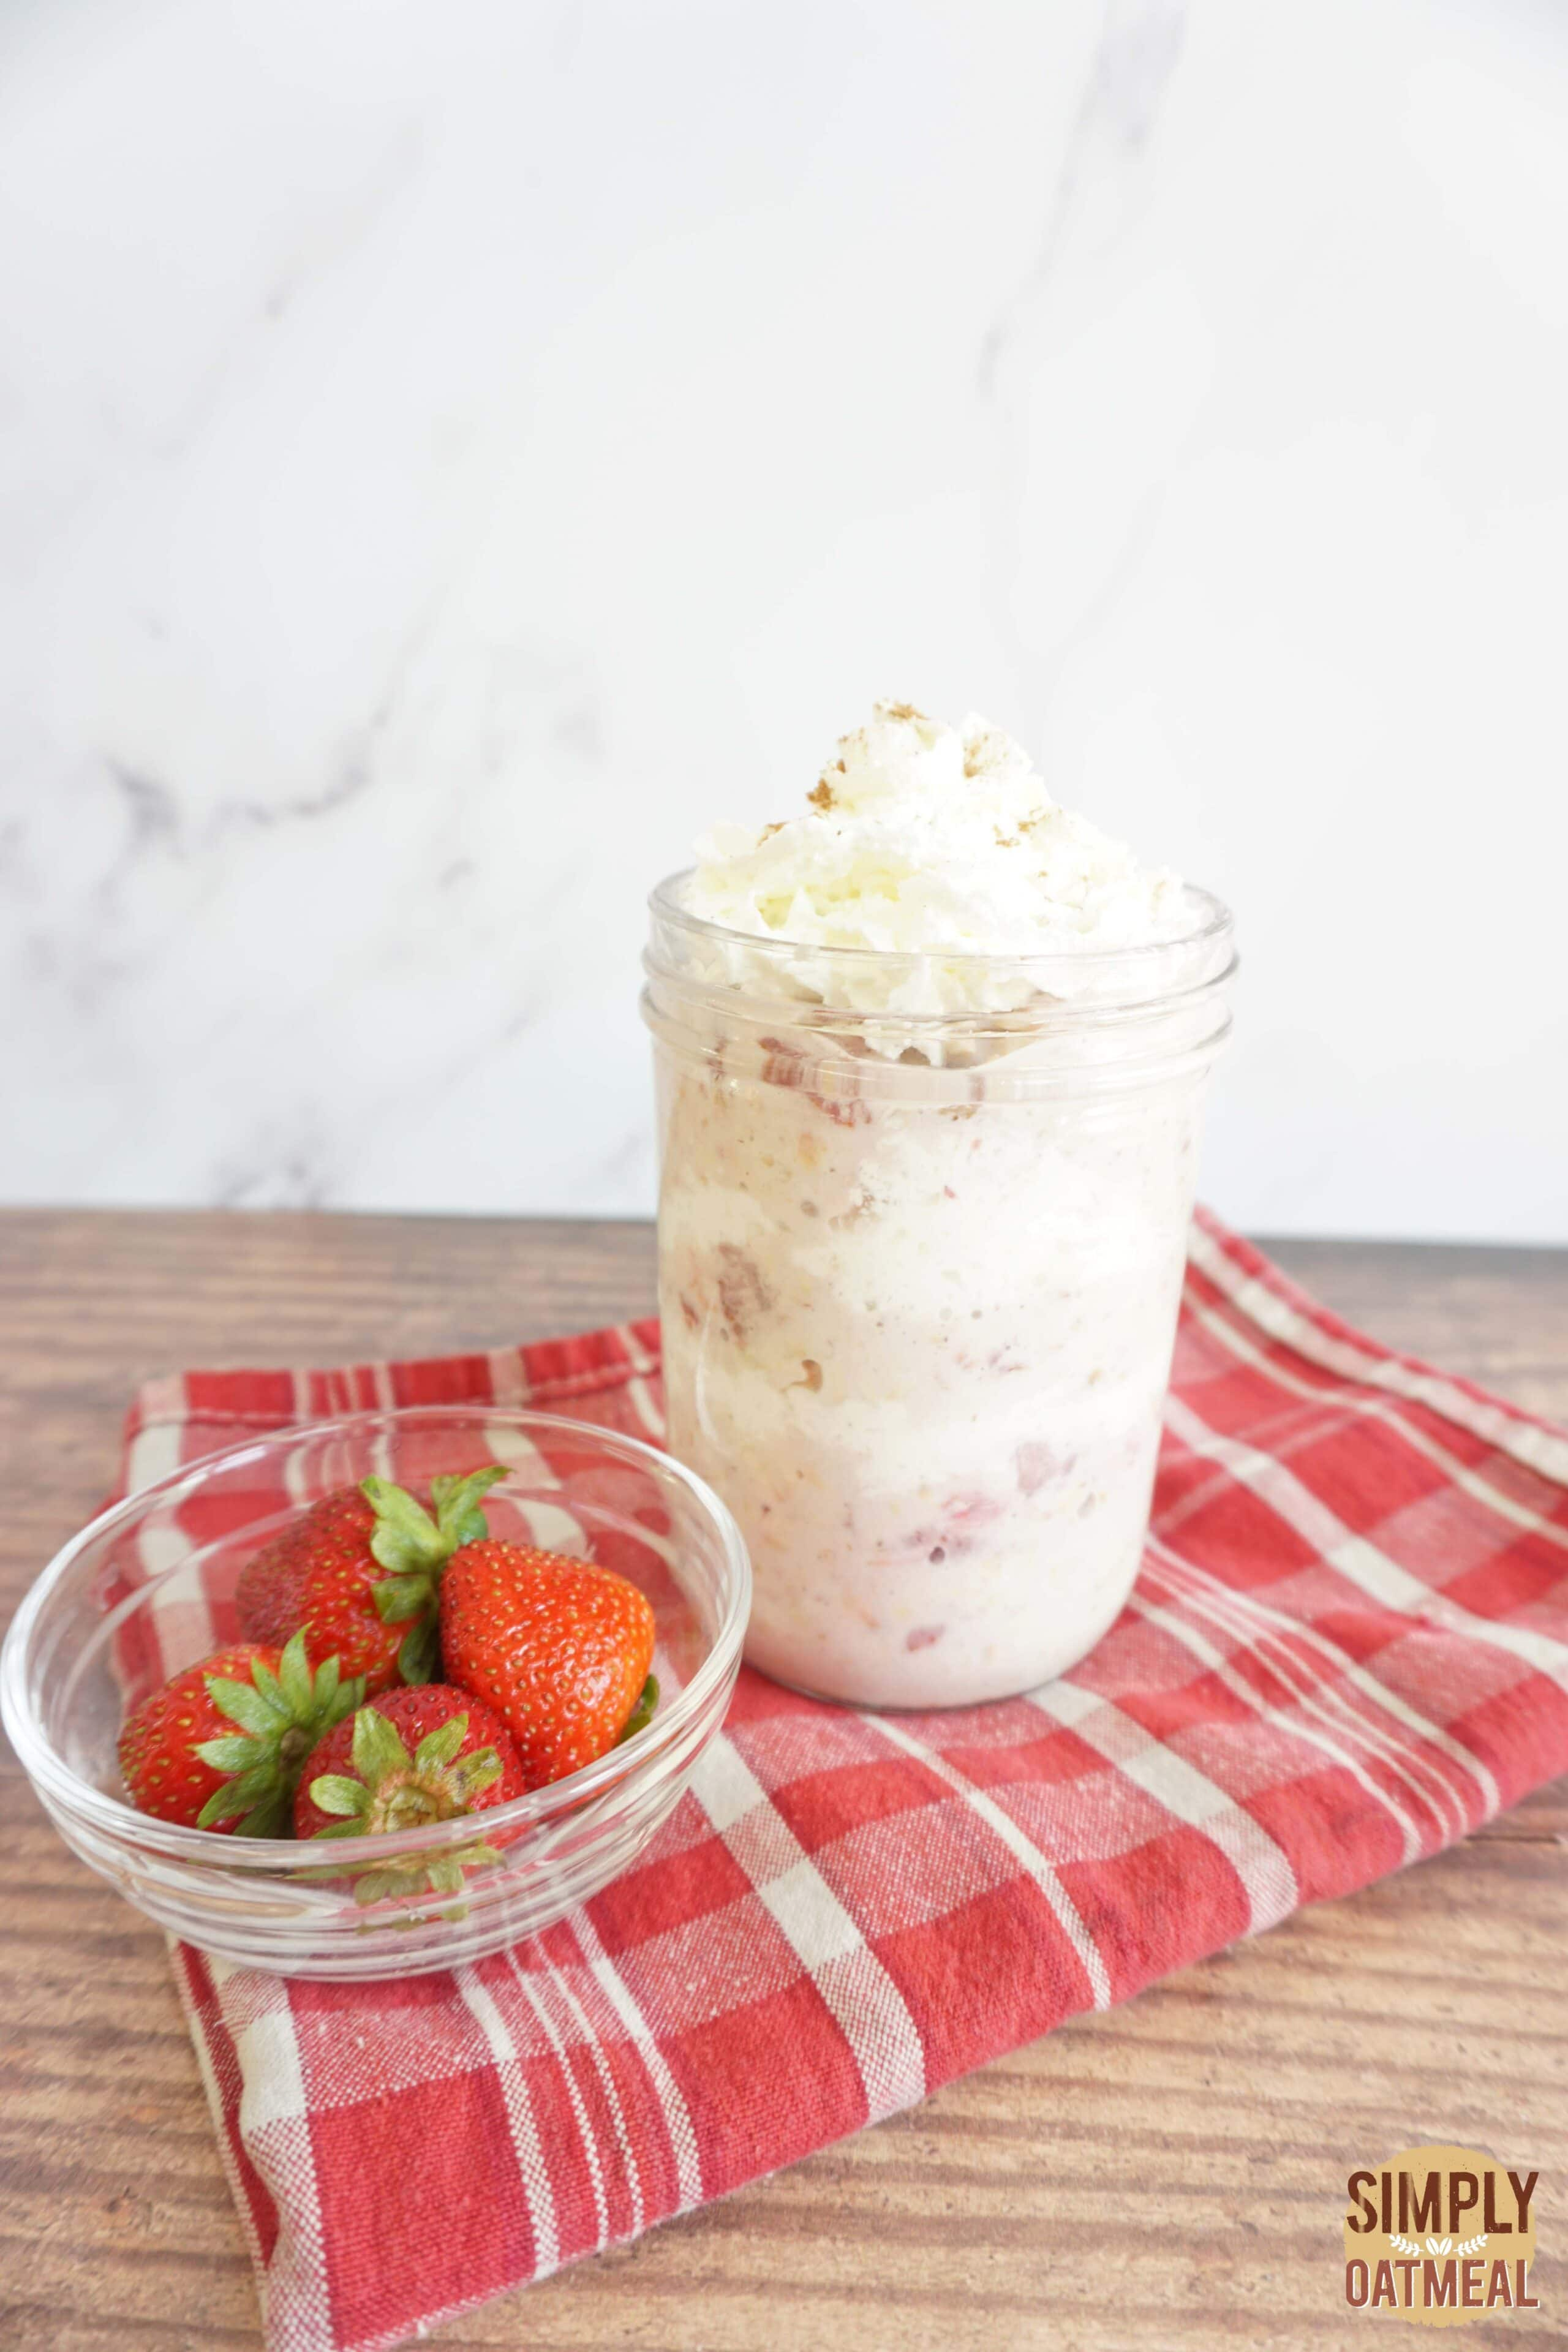 Strawberry and cream overnight oats in a mason jar with whipped cream and wild strawberries.